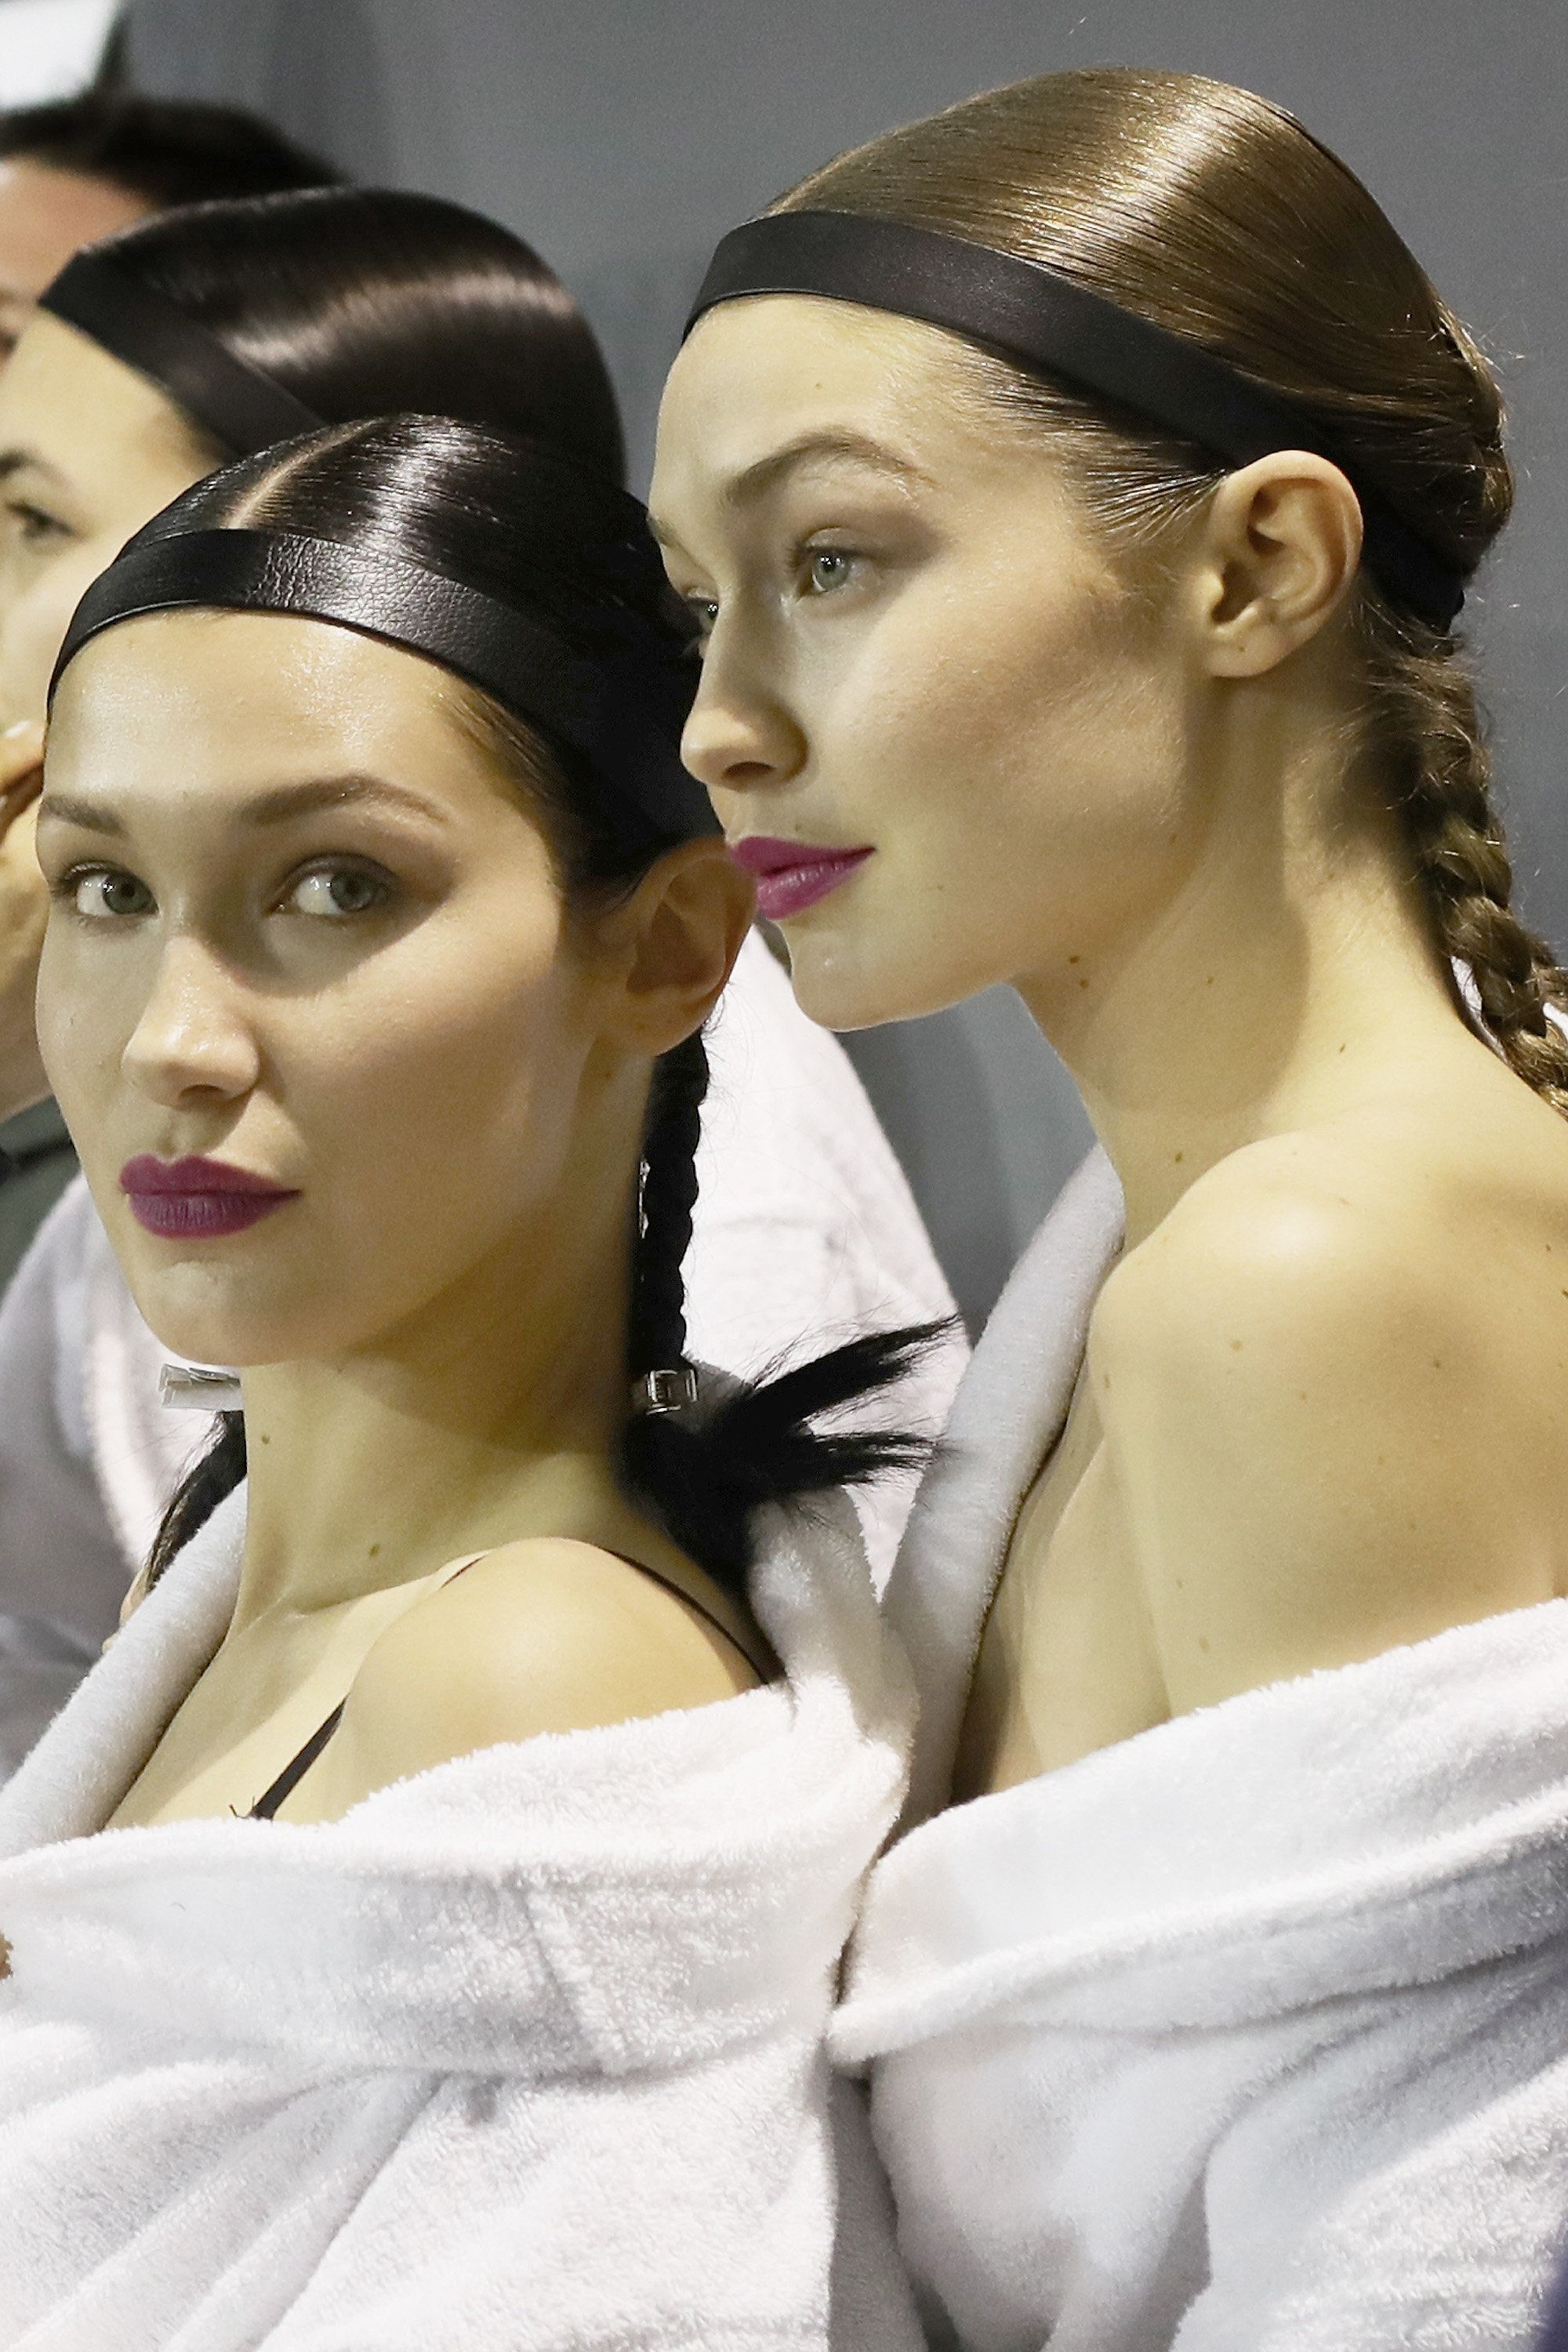 H&M Backstage Photos Prove Bella Hadid Always Has Her Game Face